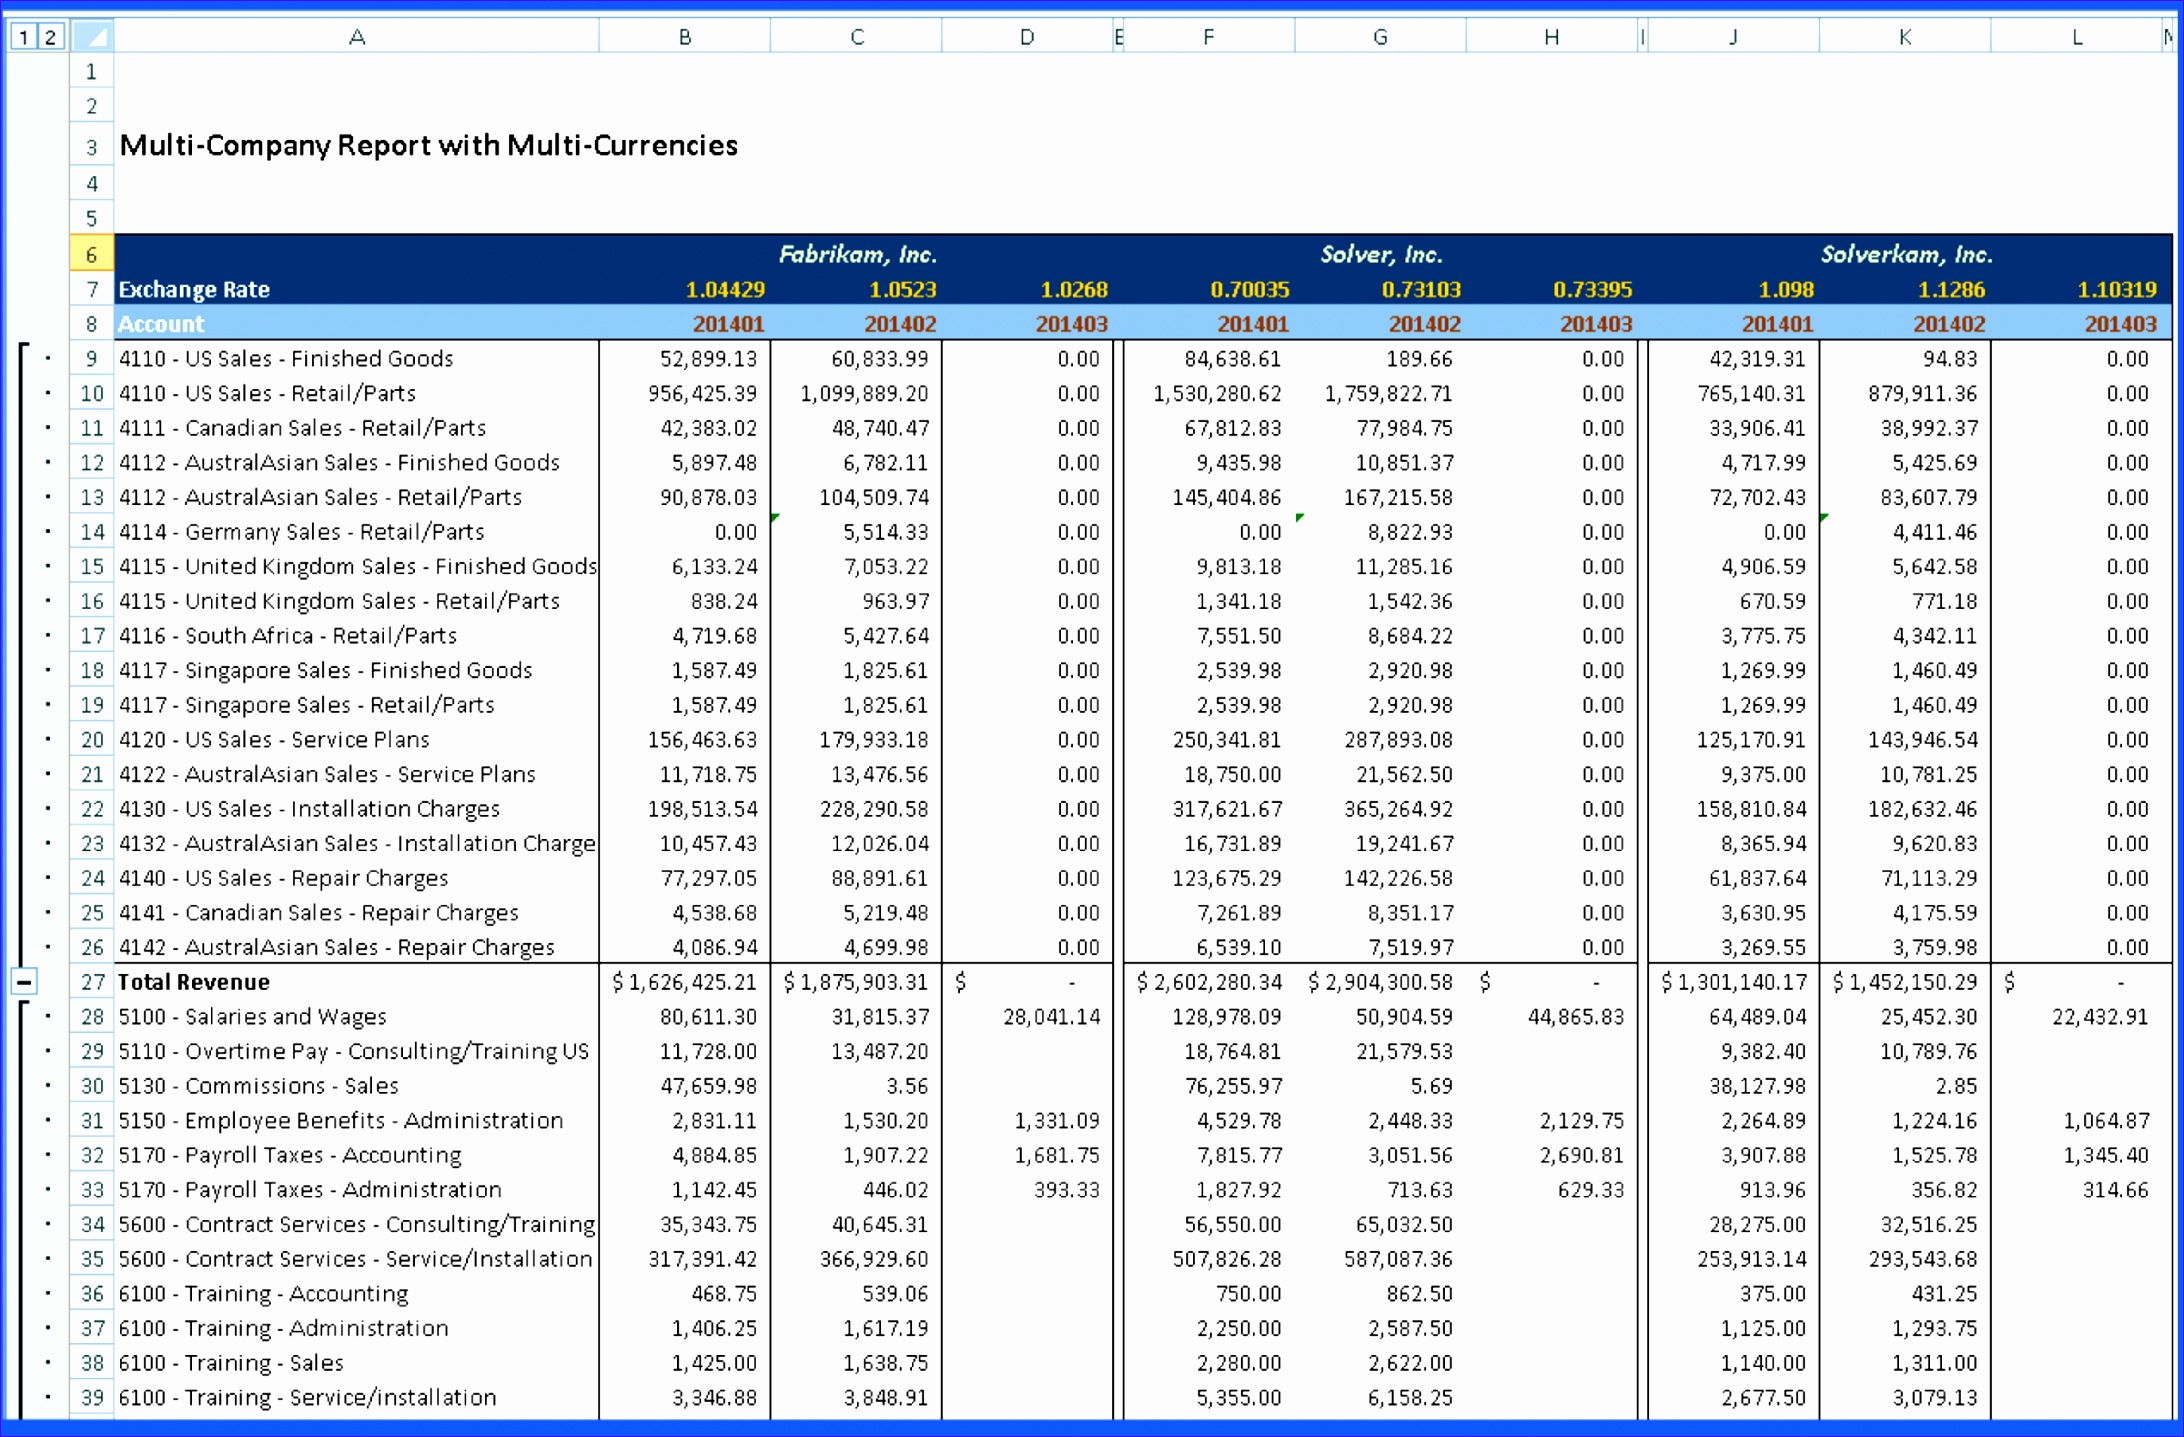 Capital Budgeting Excel Template Ihqhk Elegant solutionfilehx Id=